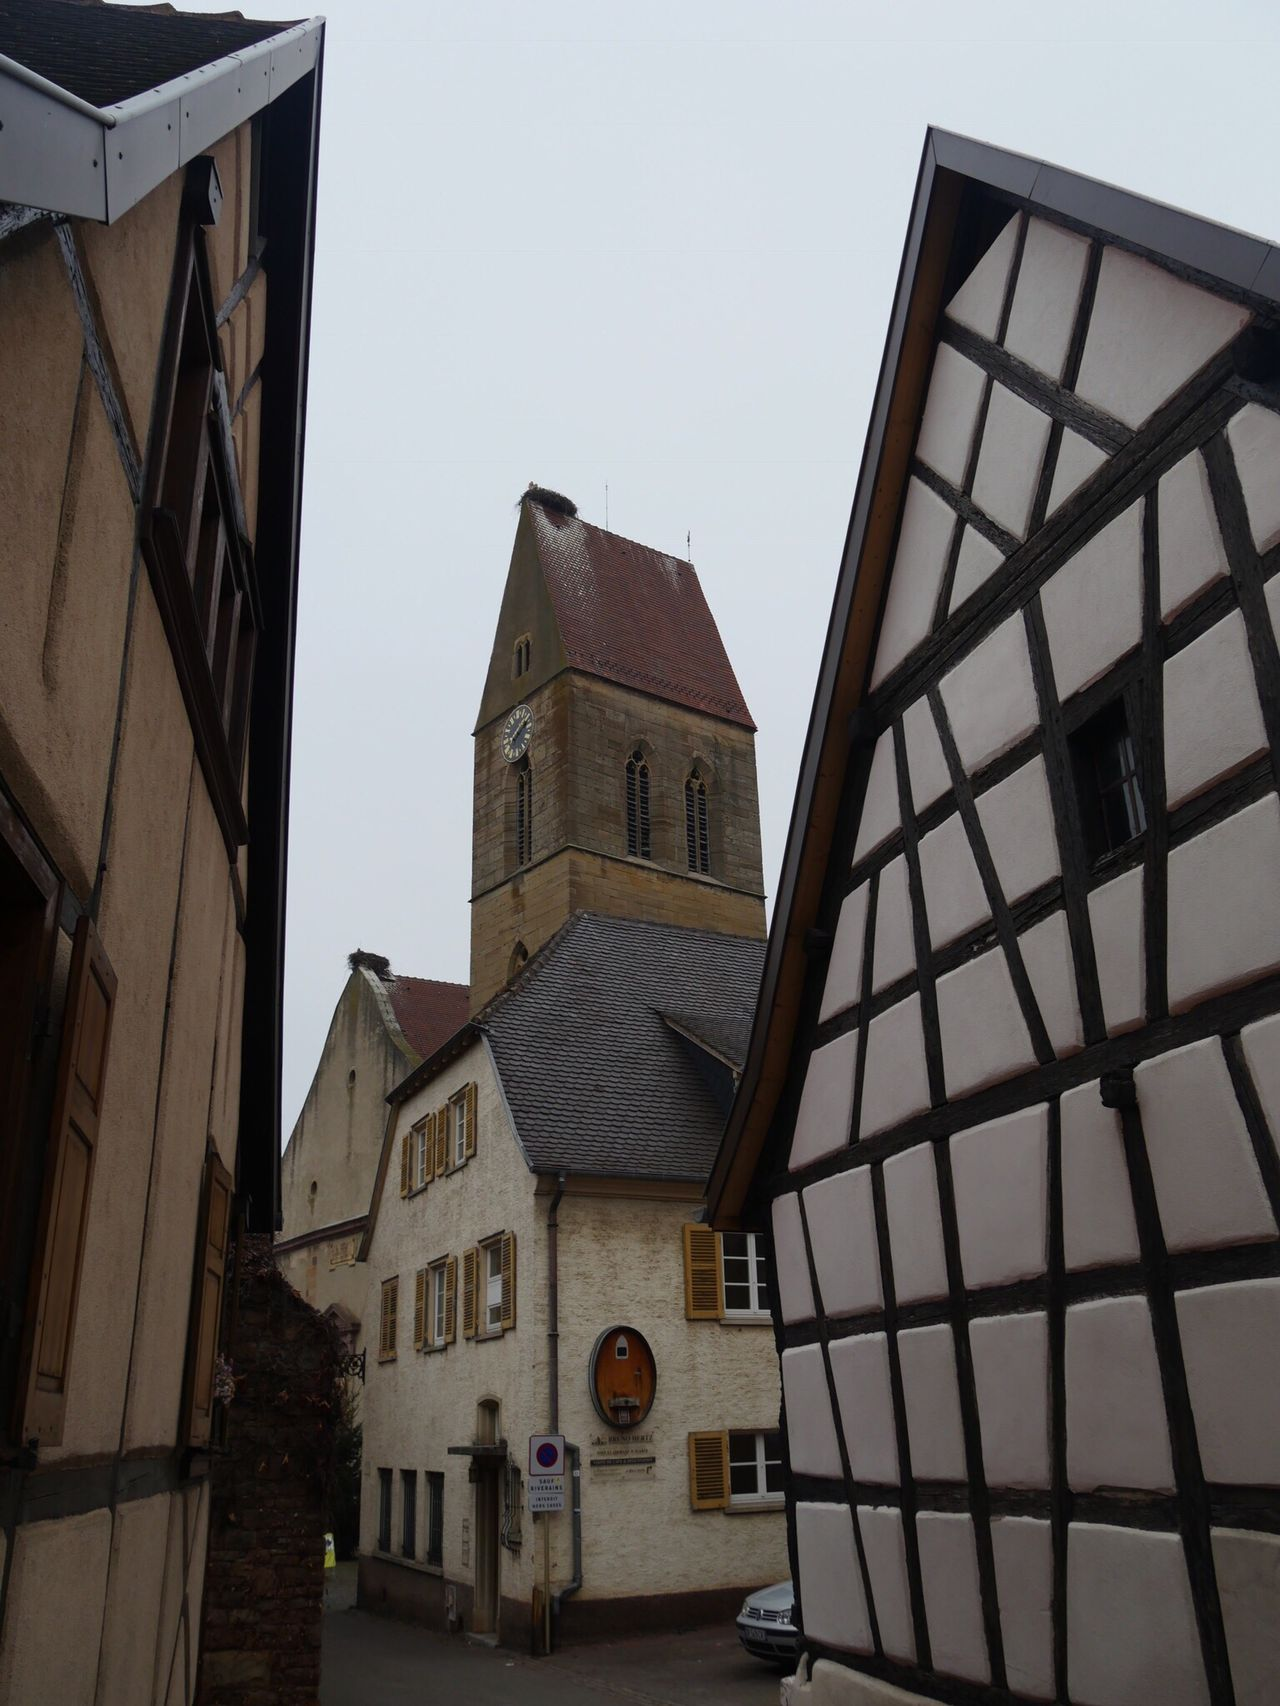 Alsace Eguisheim France Half-timbered House Church Storks